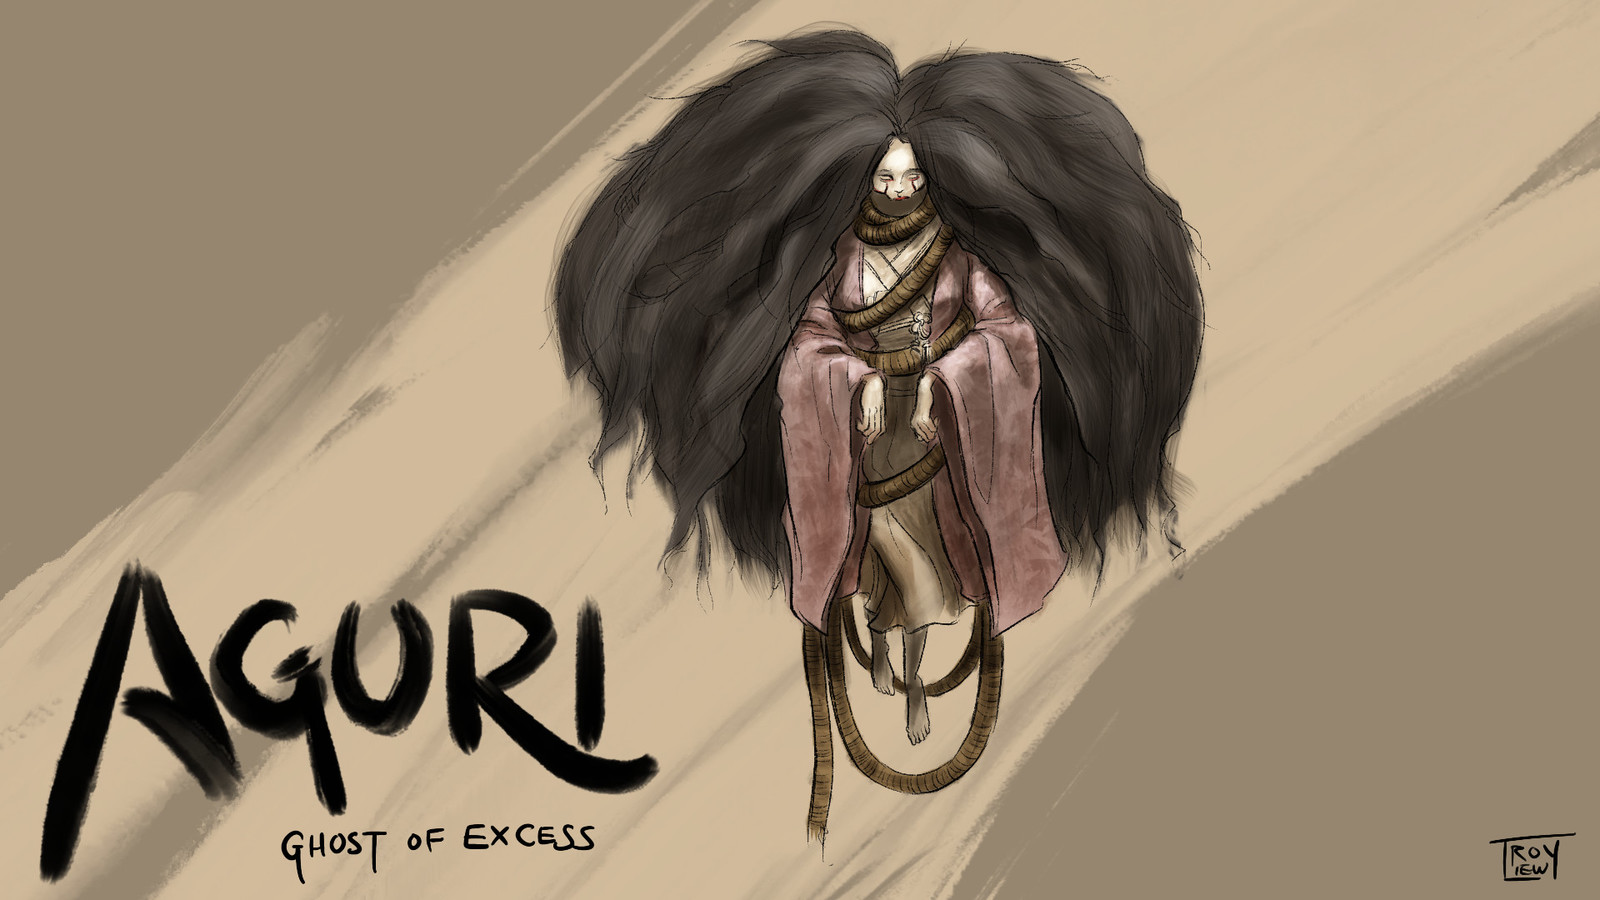 Long before the current tumult of war, there was a period of peace and prosperity. Even so, Aguri met a terrible and violent end. The peace went on without her, rolling over any memory of the poor girl. Then she rose again, a ghost from a time of excess.